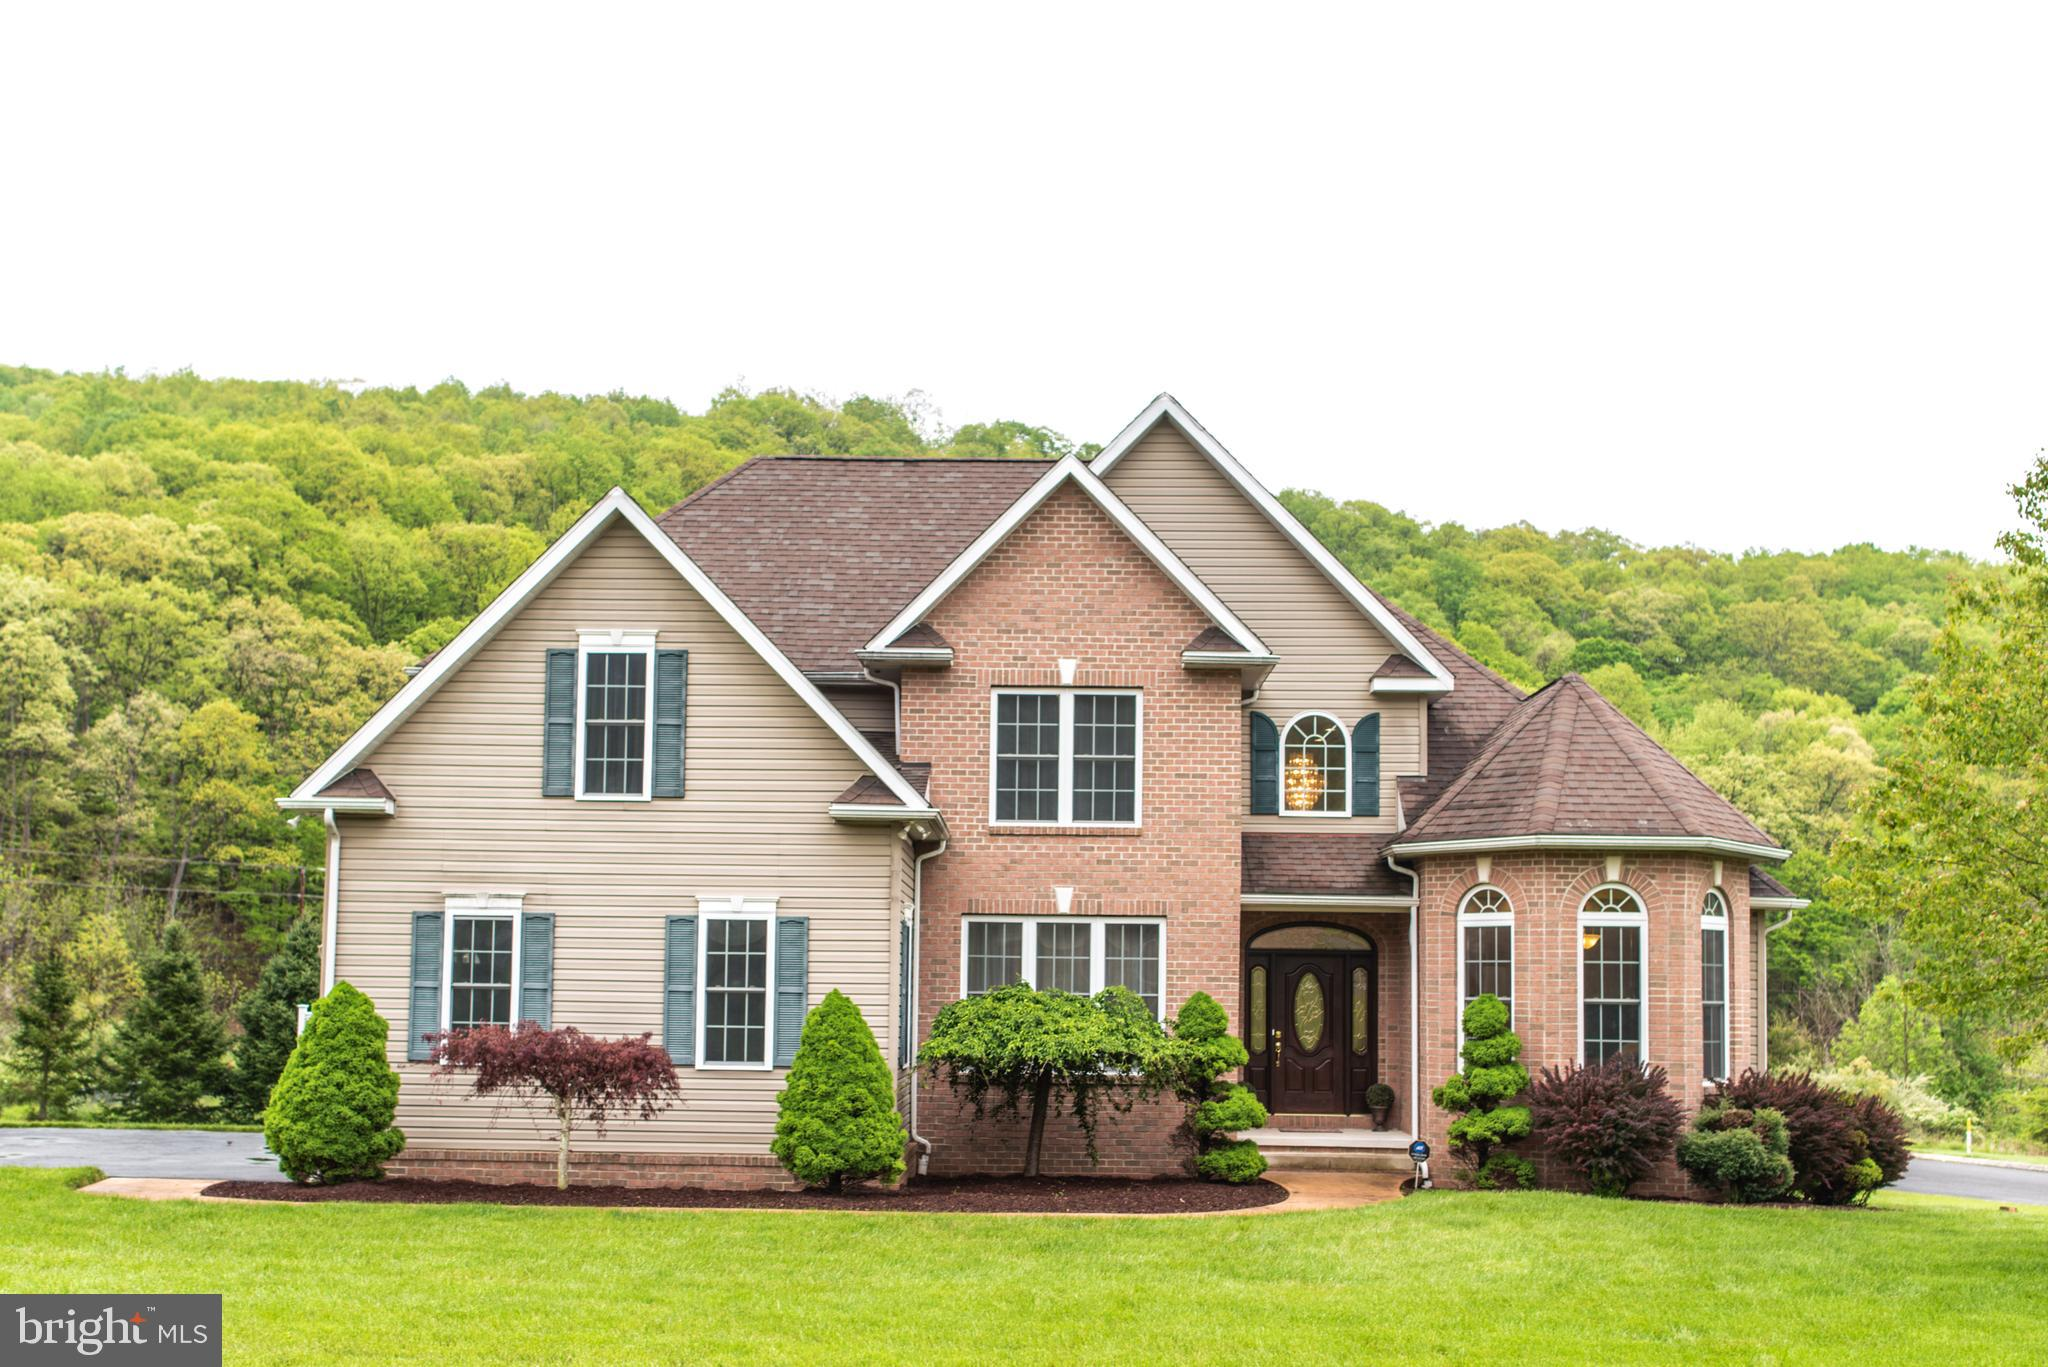 10500 Pearl View Place, Lavale, MD 21502